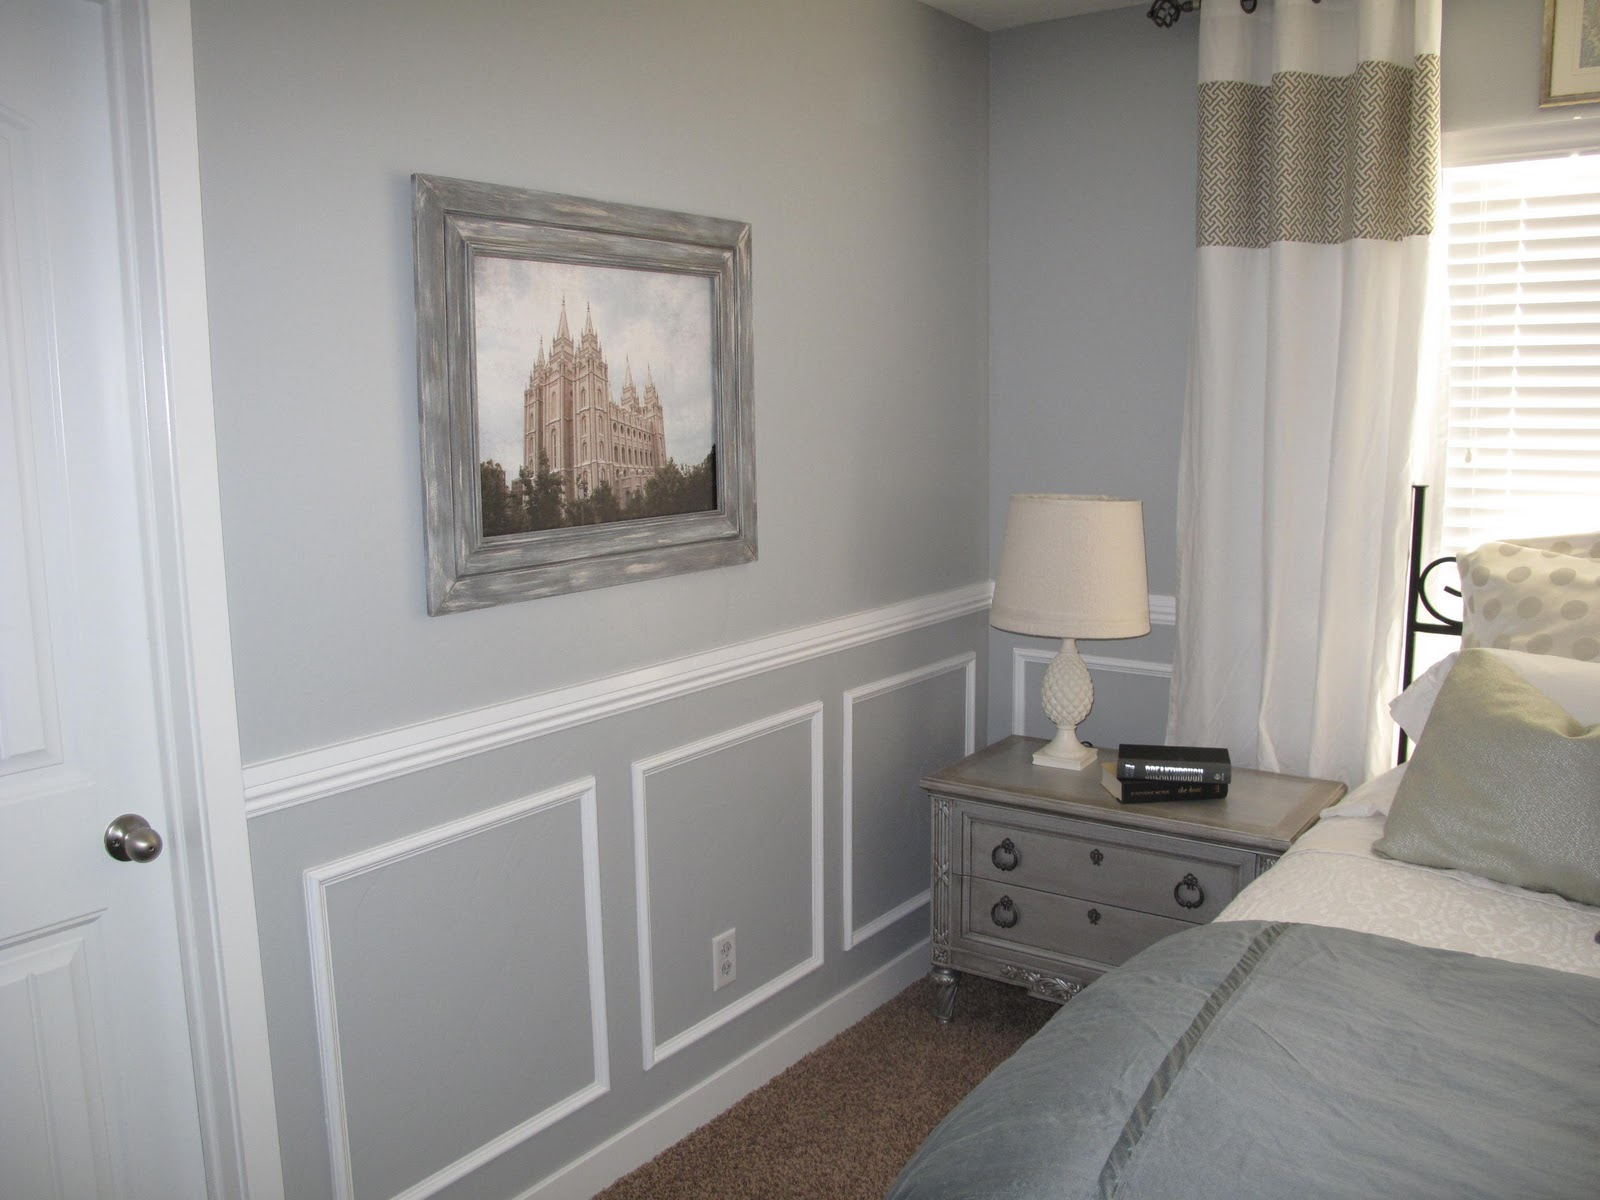 Bedroom paint ideas wanna know the best part we did this entire bedroom remodel for